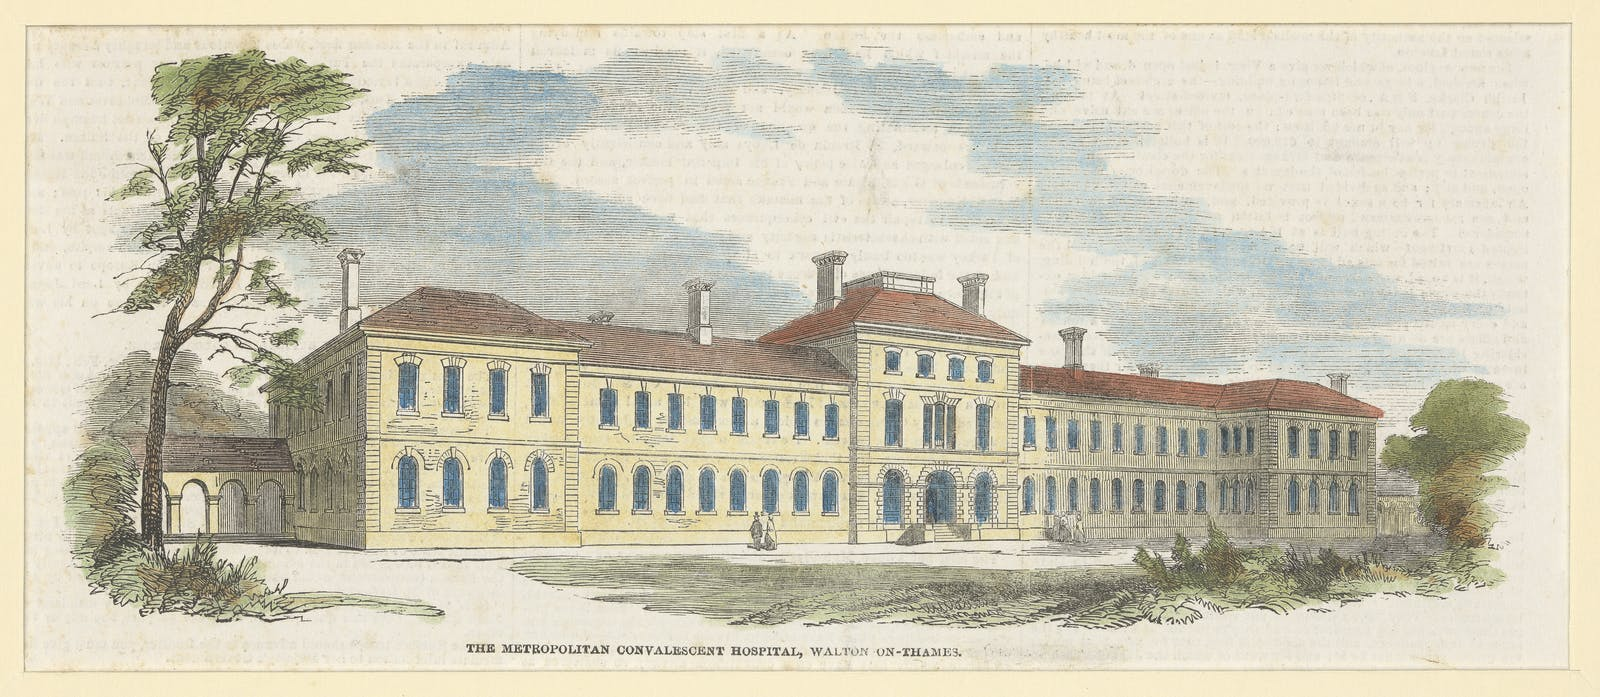 Coloured wood engraving of the front exterior of The Metropolitan Convalescent Hospital, Walton-On-Thames.